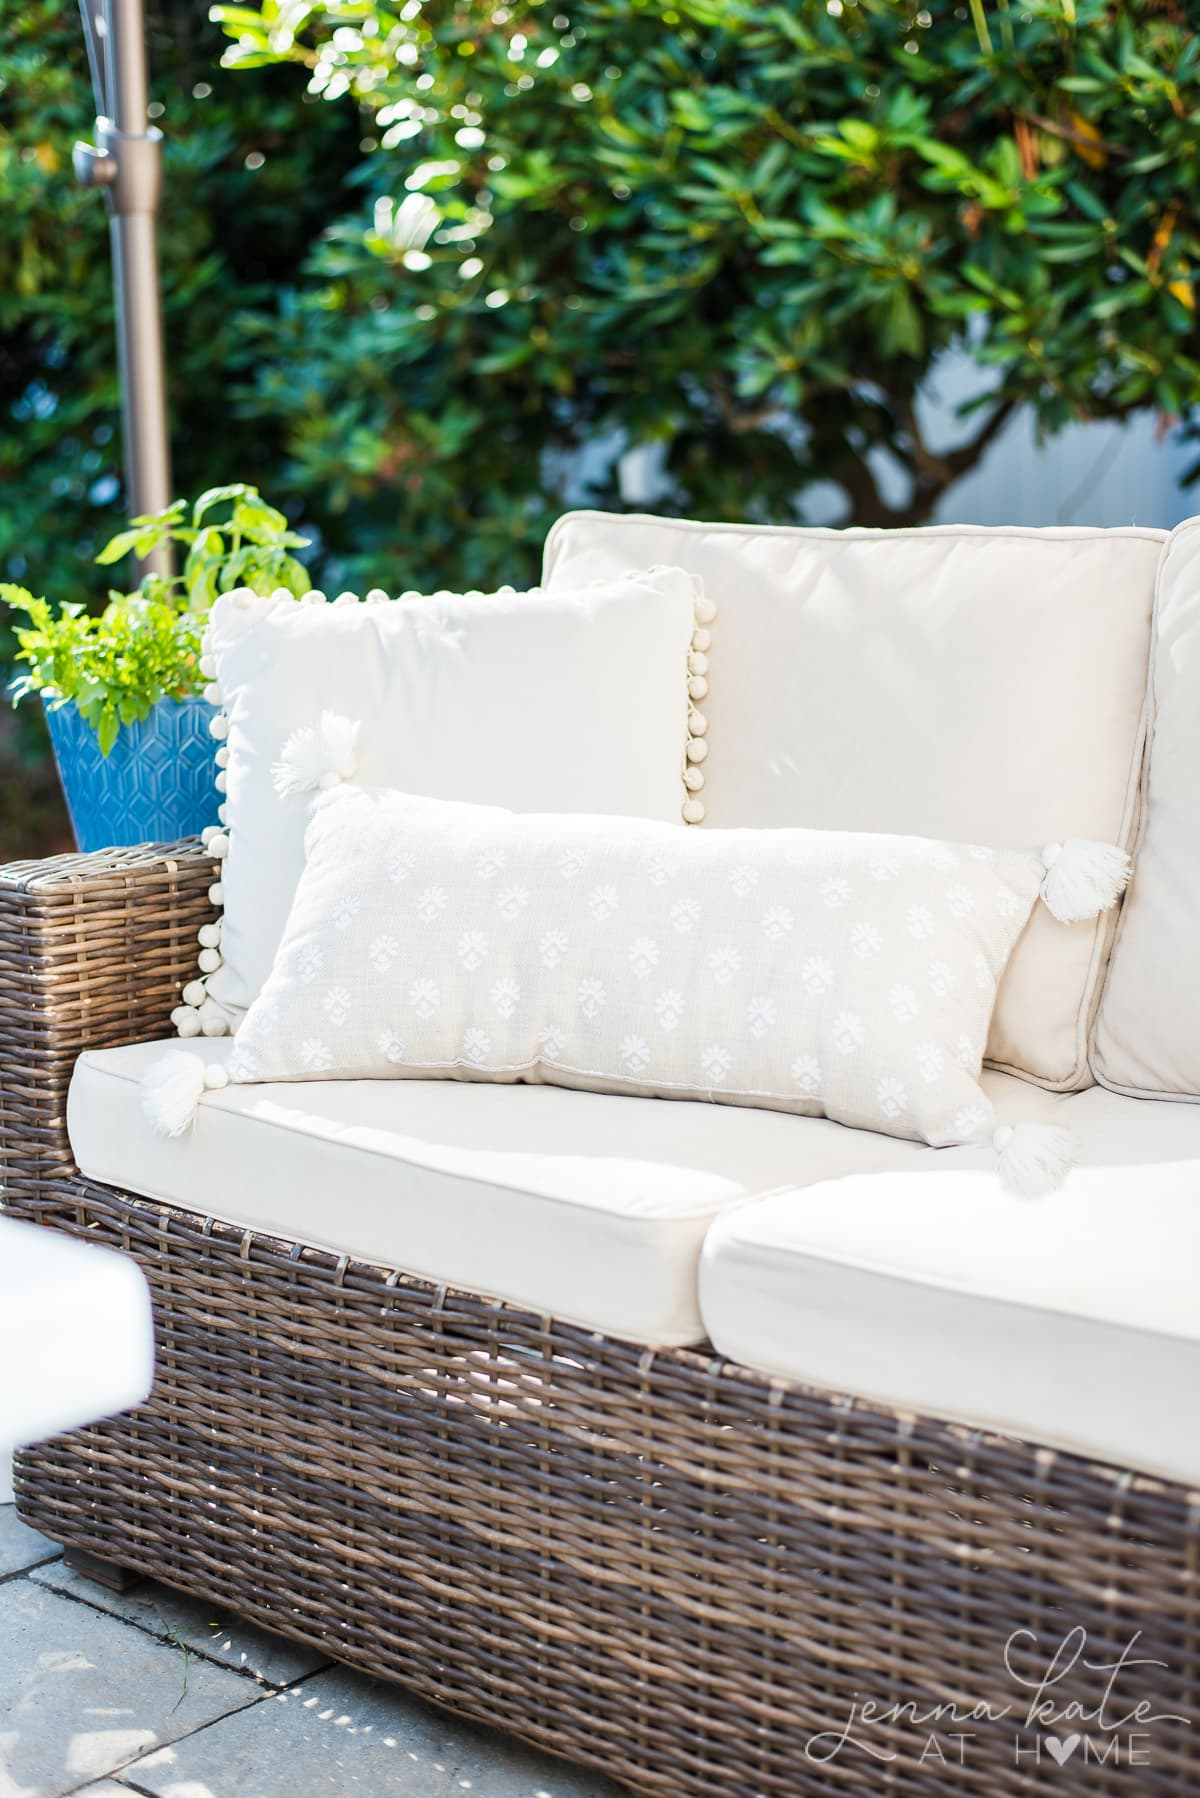 Outdoor cushions look brand new after being cleaned